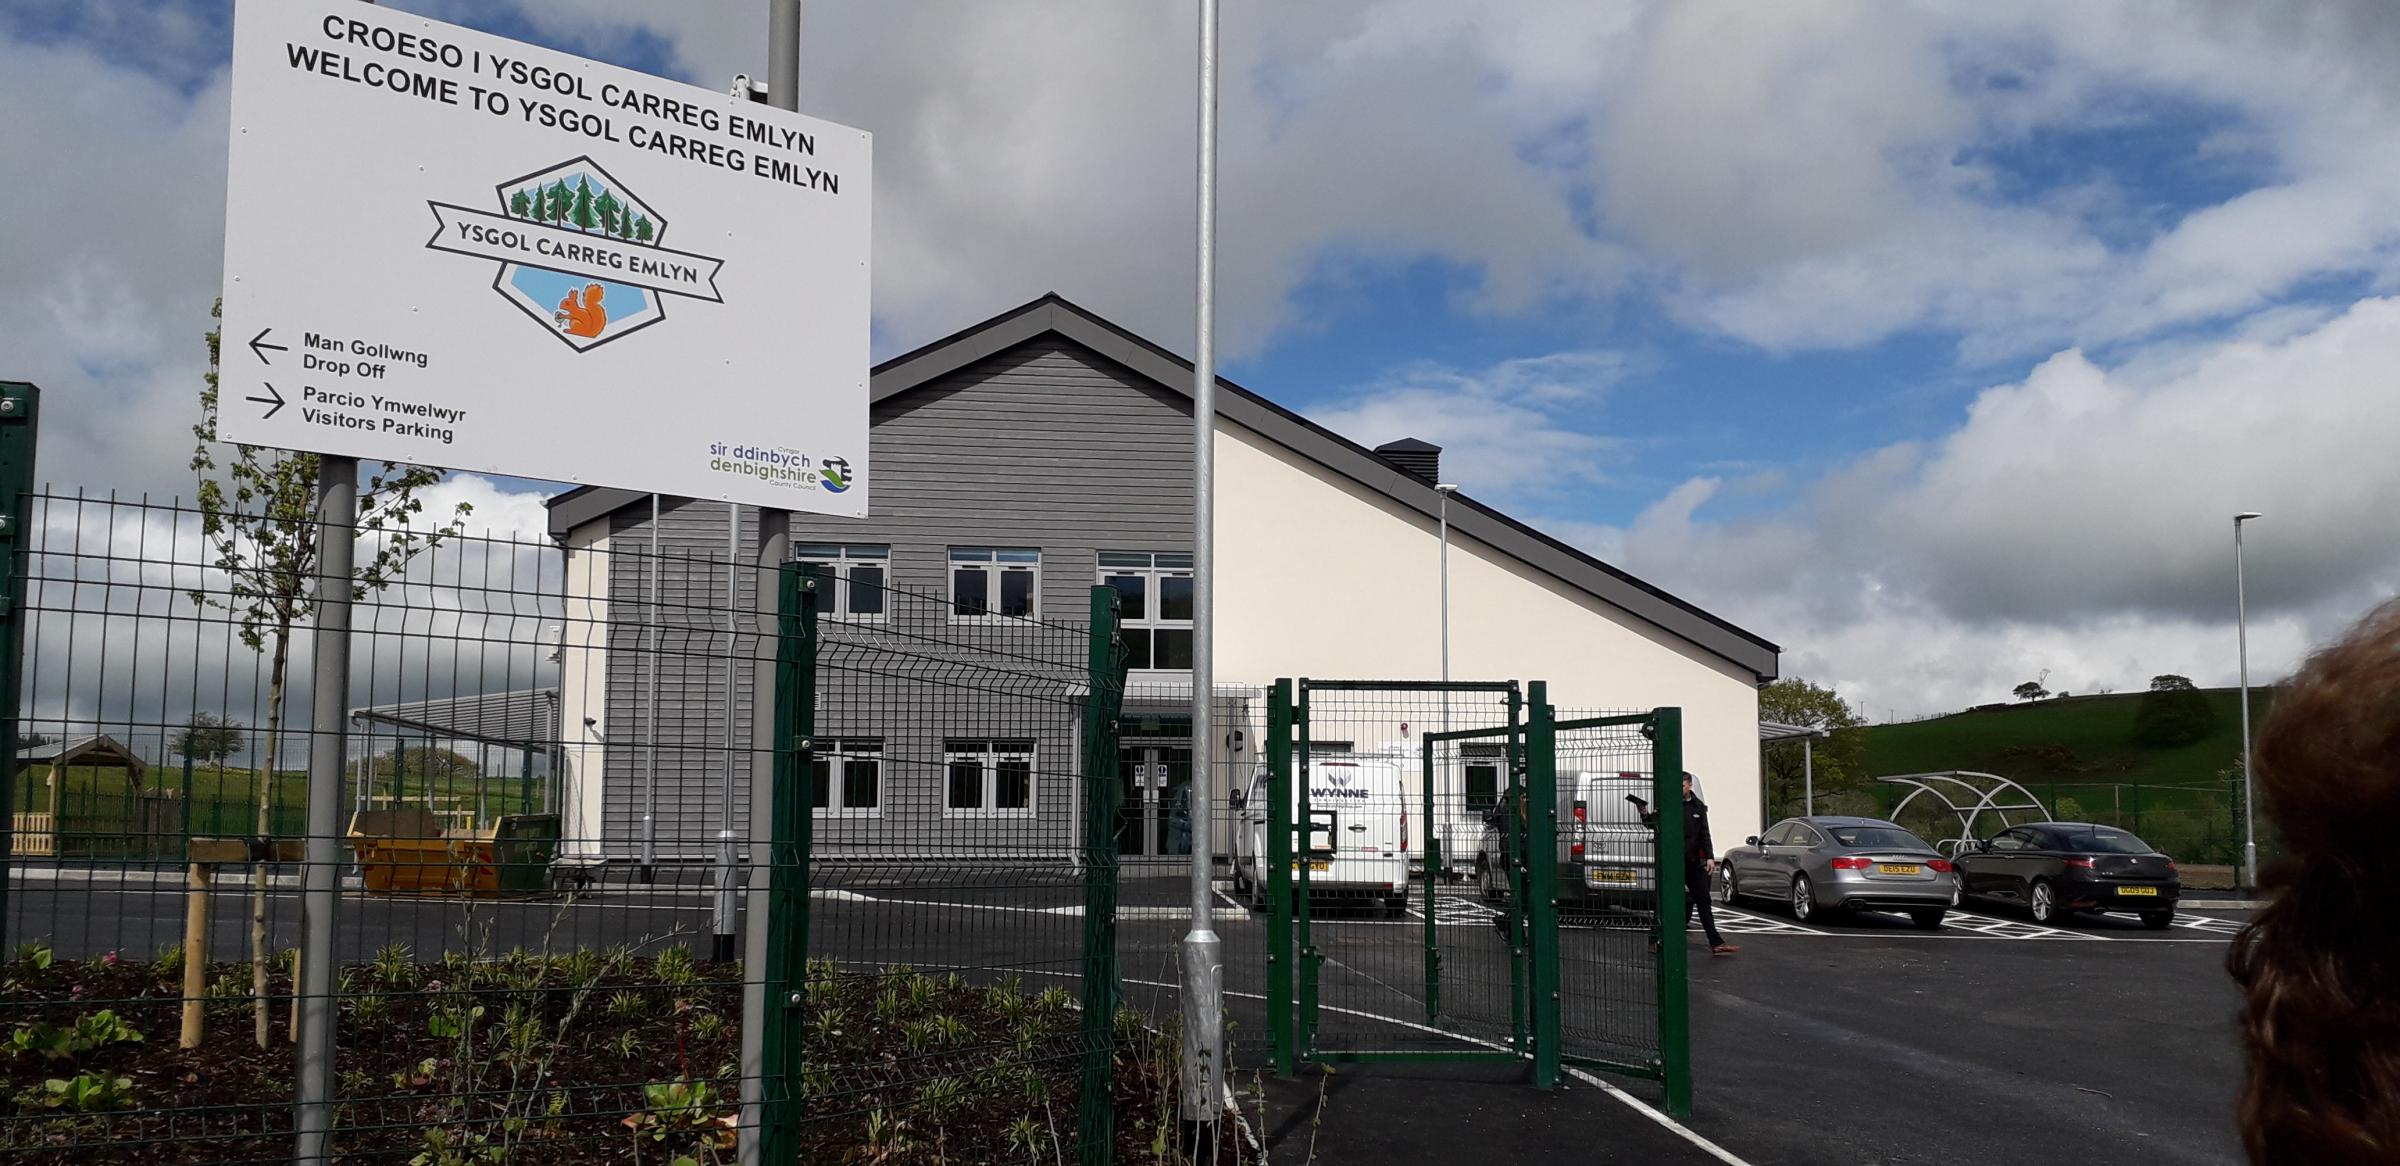 First look at the brand-new Ysgol Carreg Emlyn building. Picture: Kerry Roberts